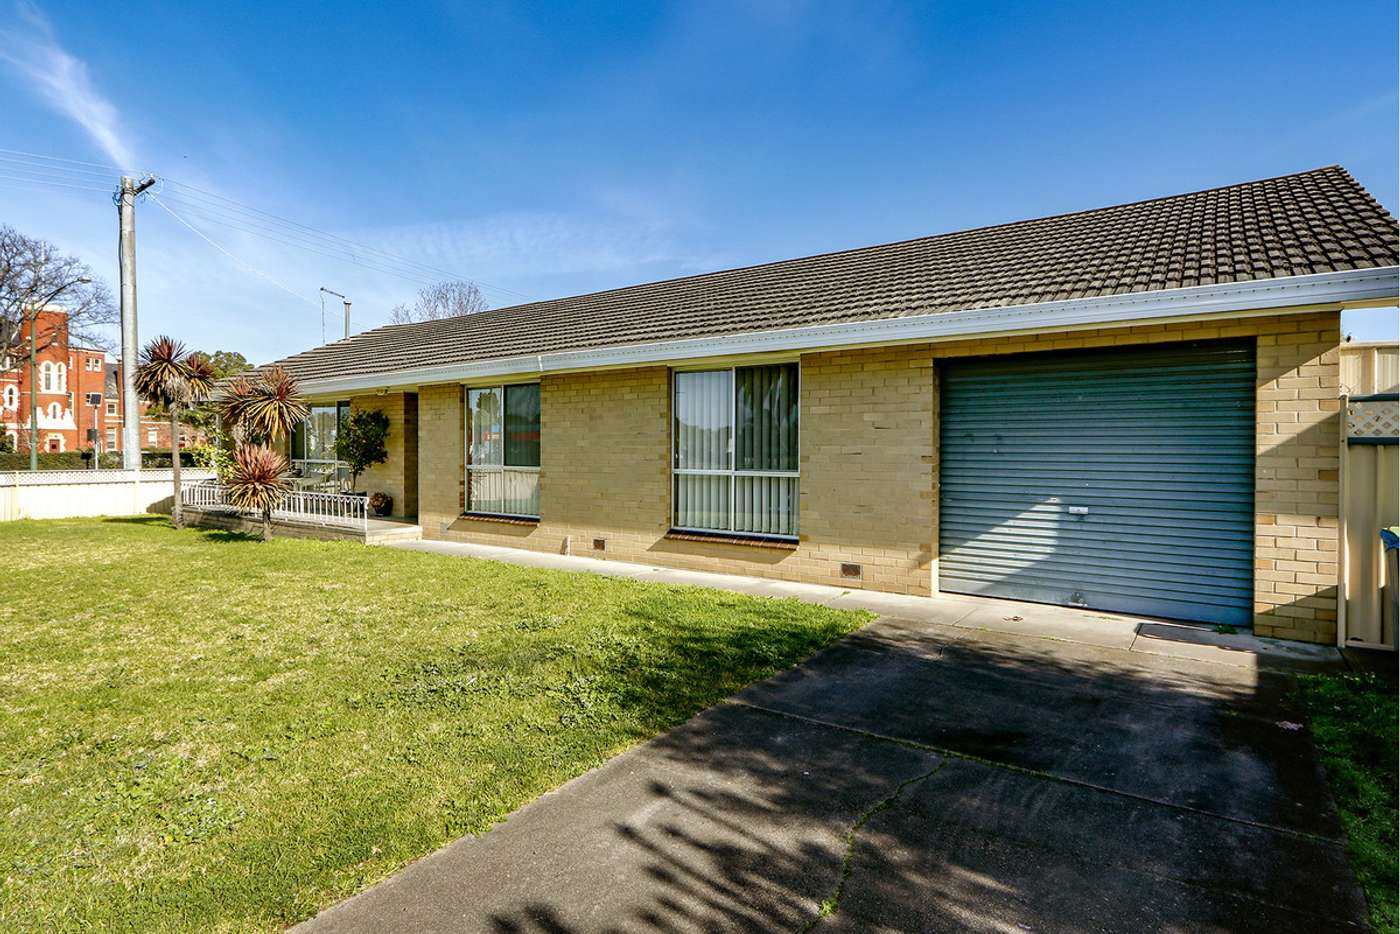 Main view of Homely house listing, 371 York Street, Sale VIC 3850